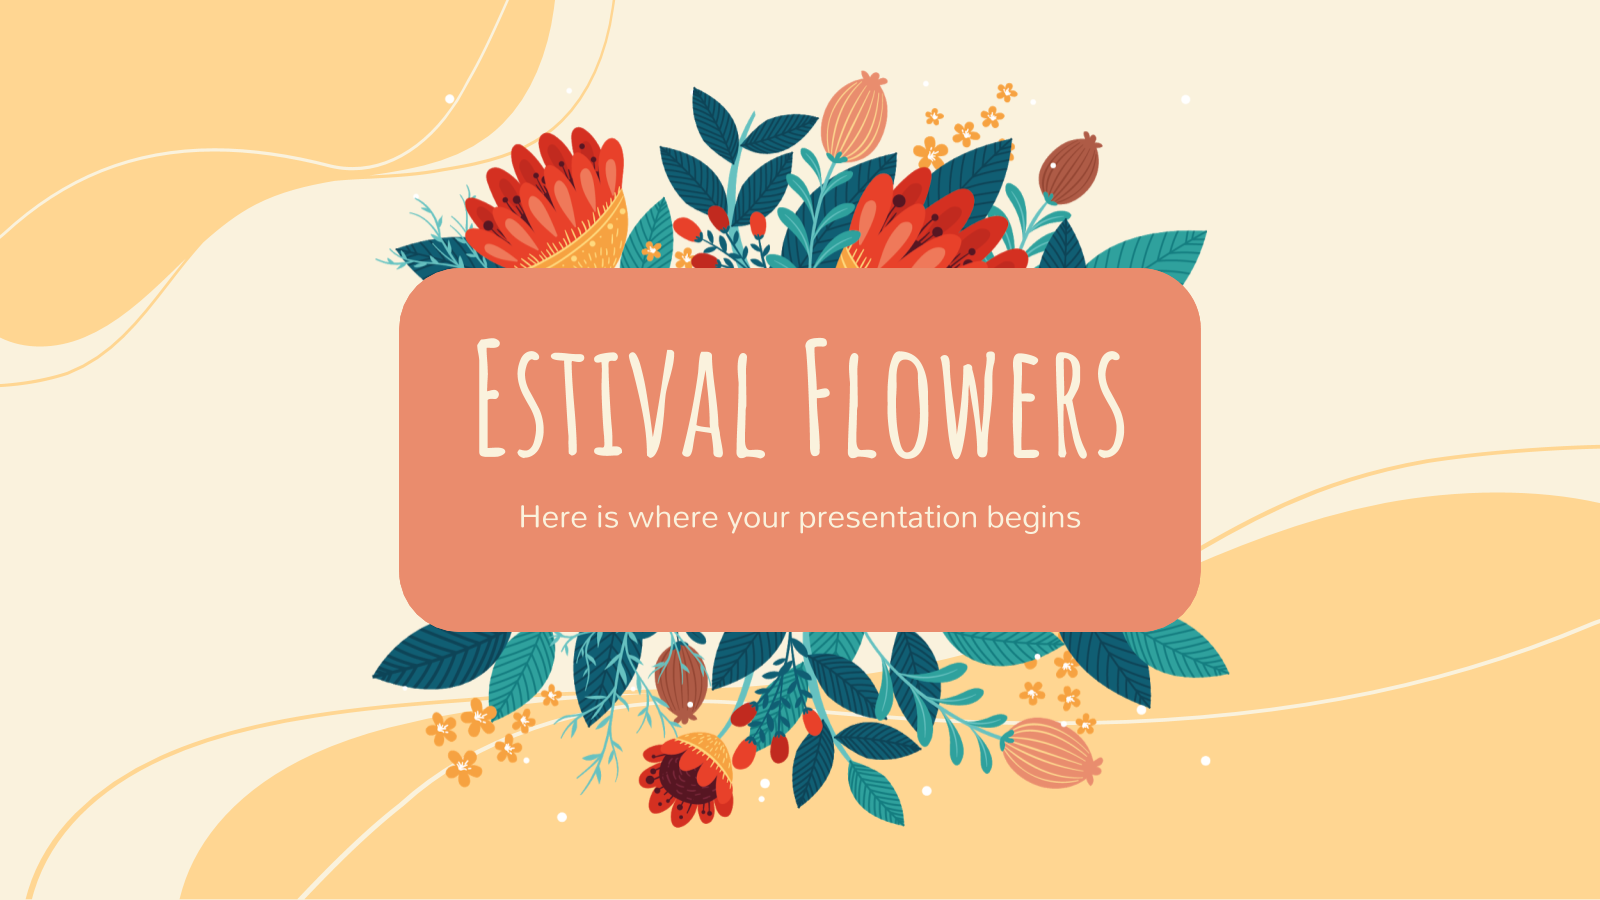 Estival Flowers presentation template